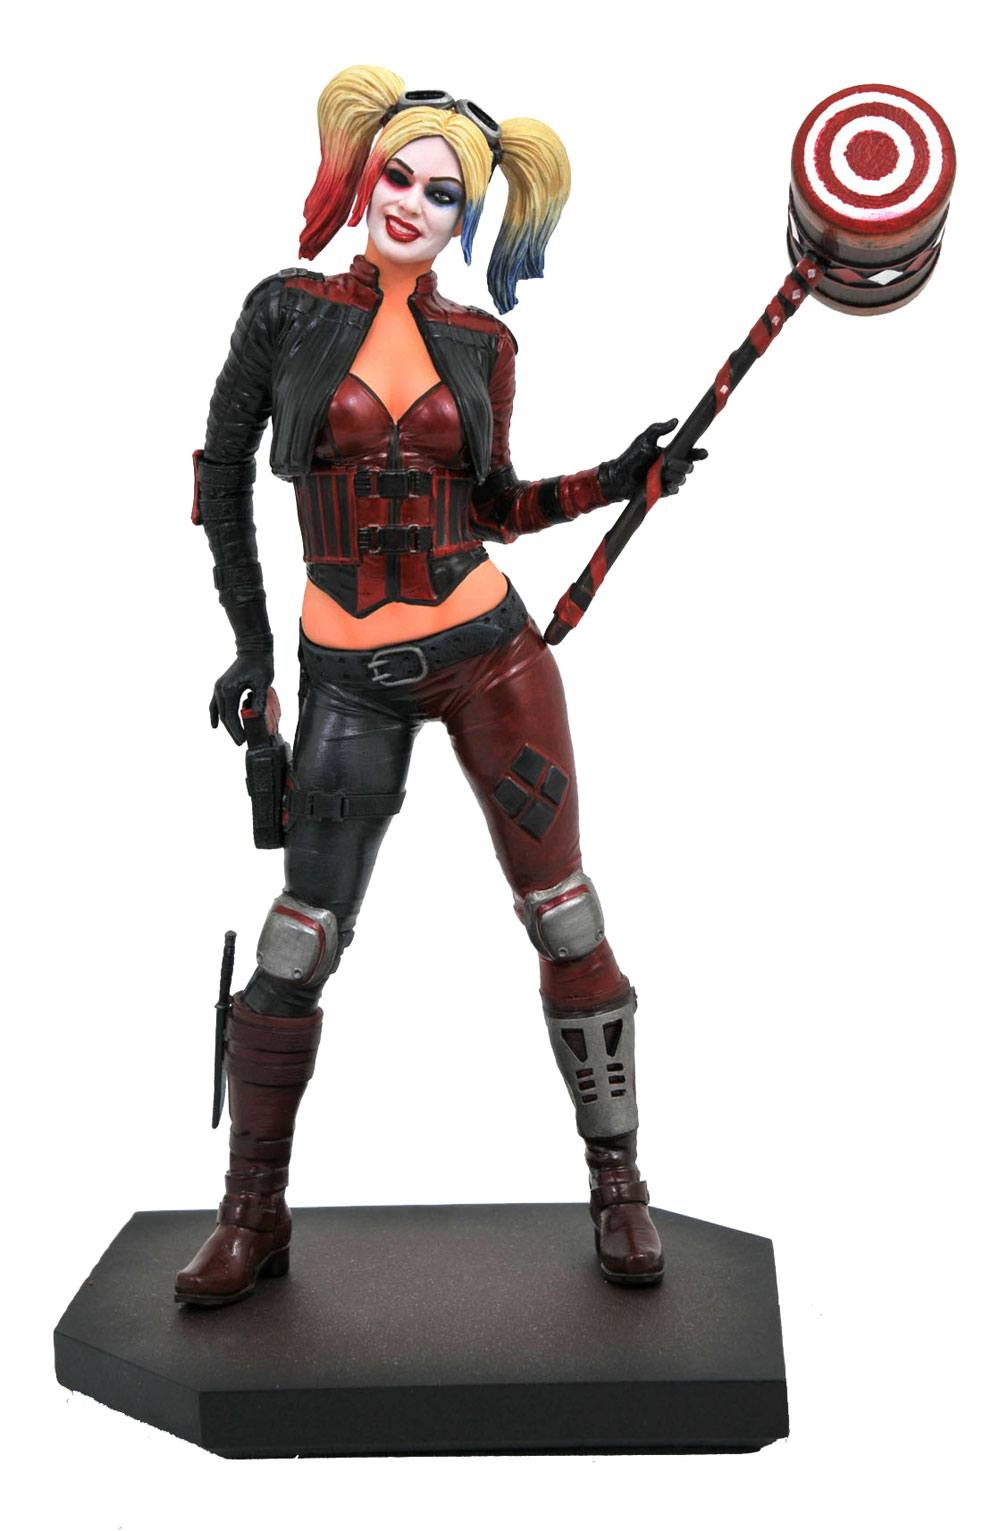 DC Gallery - Injustice 2 - Harley Quinn PVC Statue